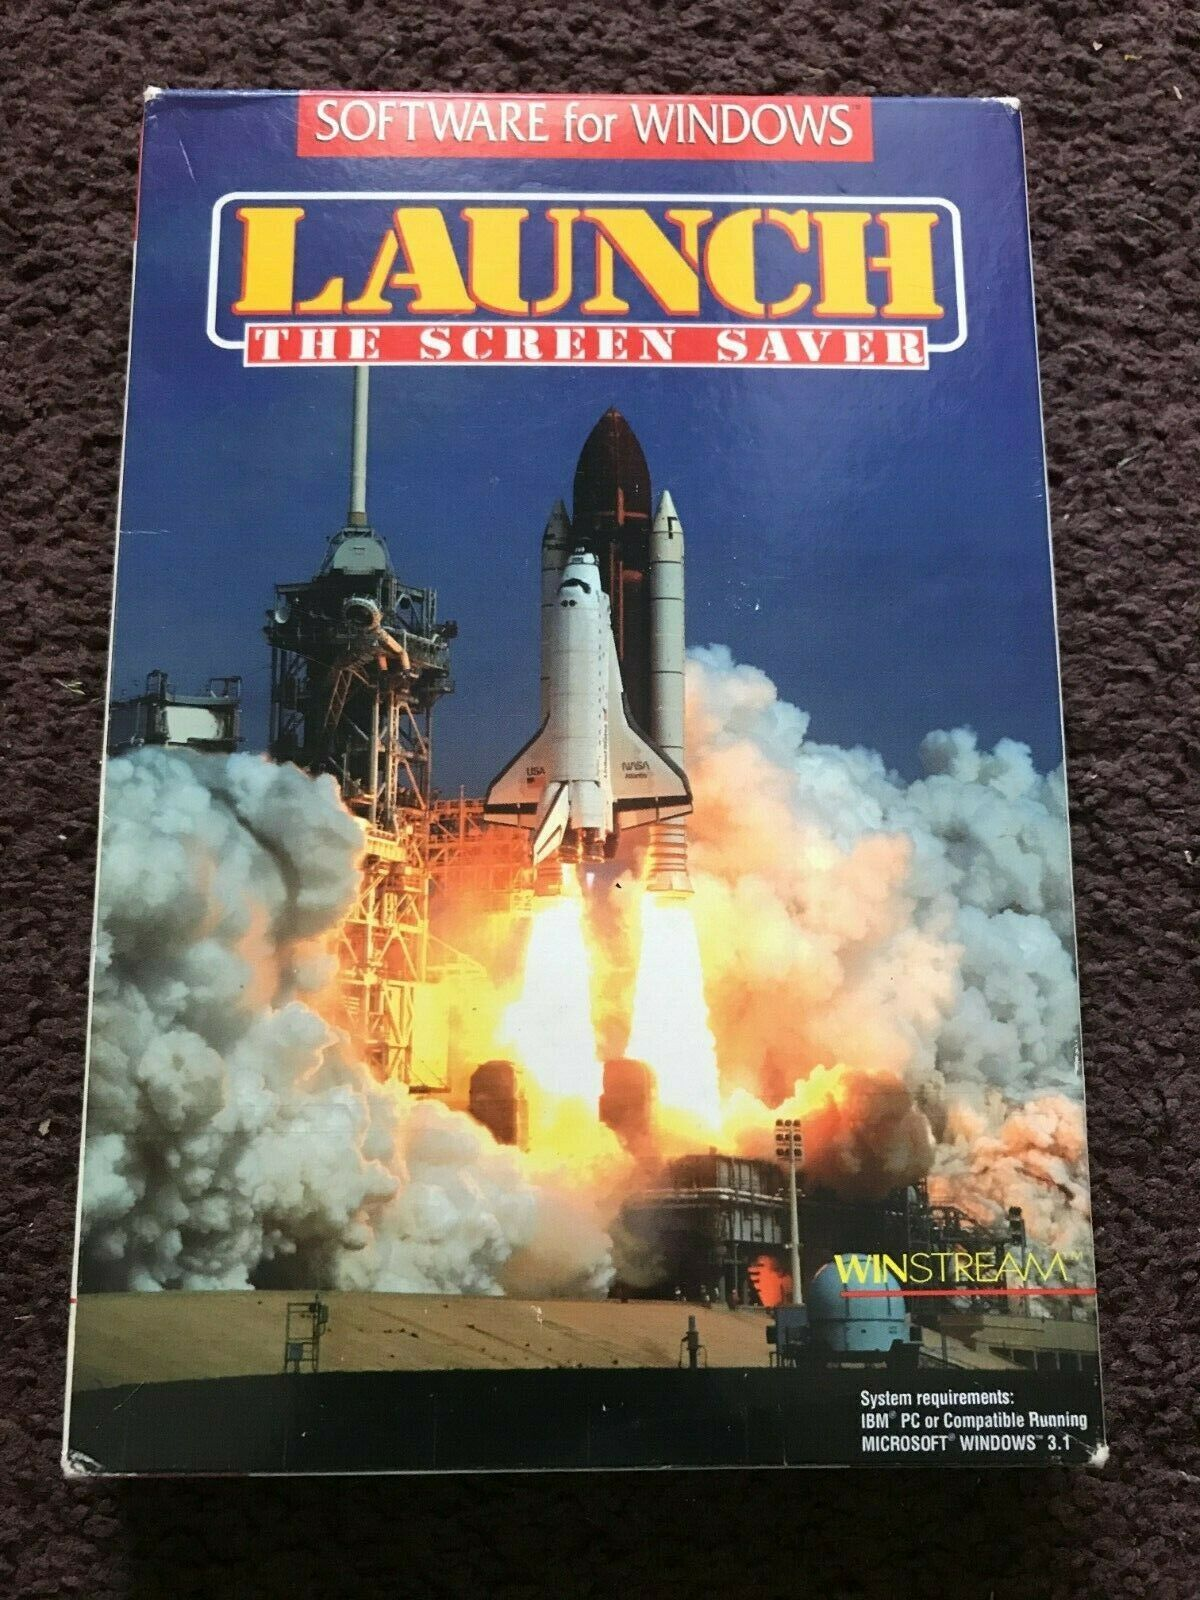 Winstream LAUNCH The Screen Saver Software IBM Tandy NASA Shuttle 3.5